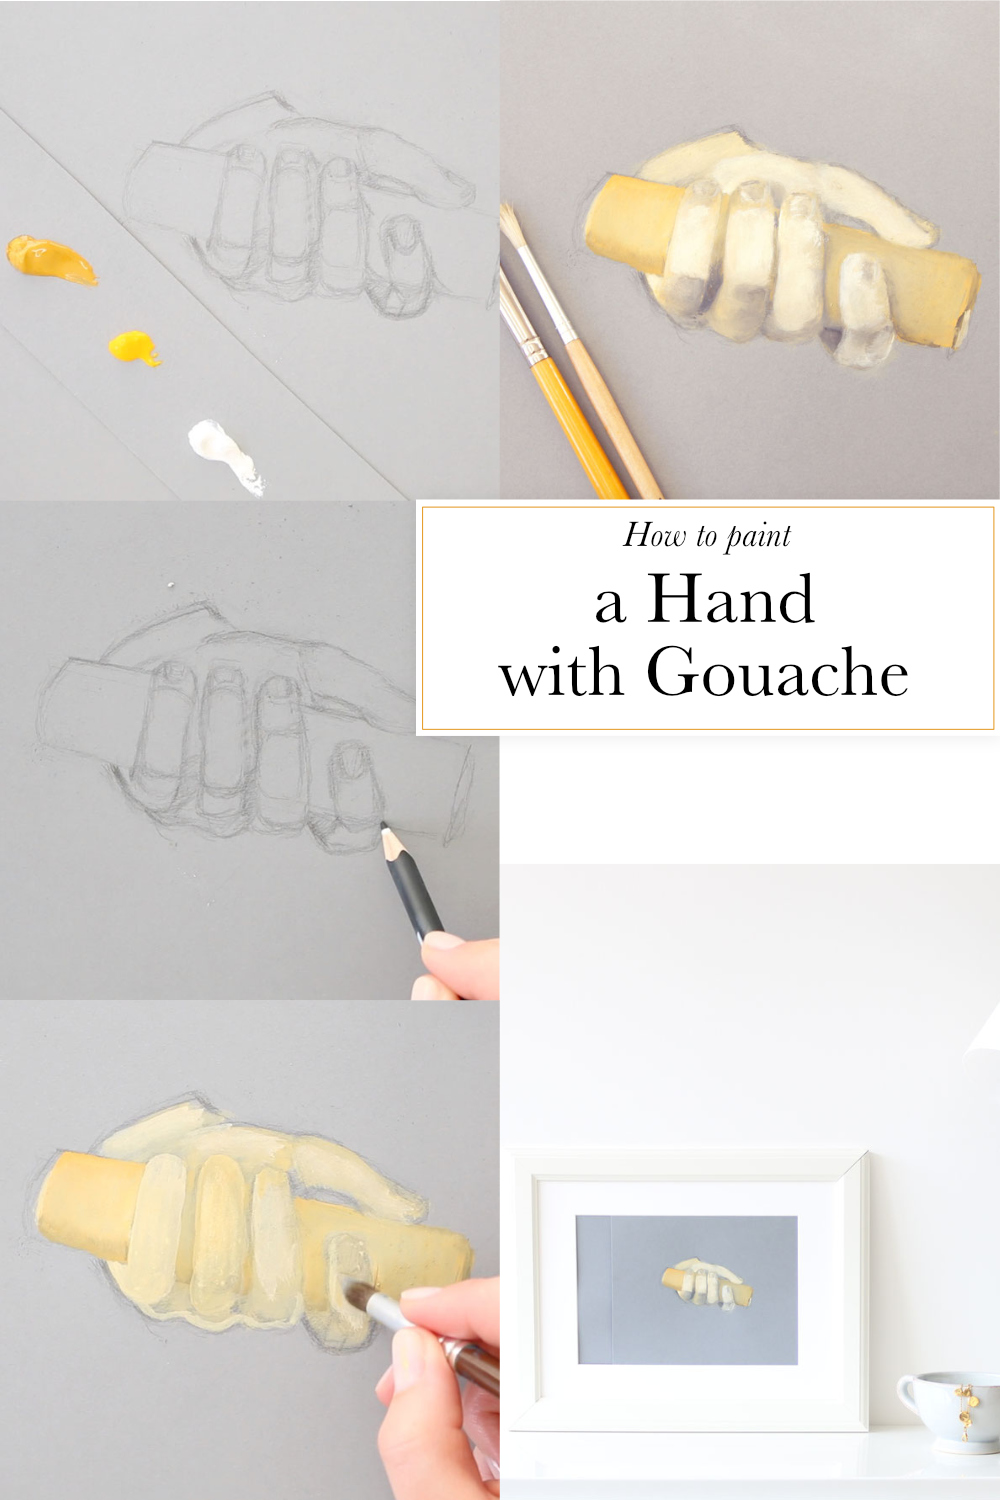 How to paint a hand with gouache |  by The Daily Atelier